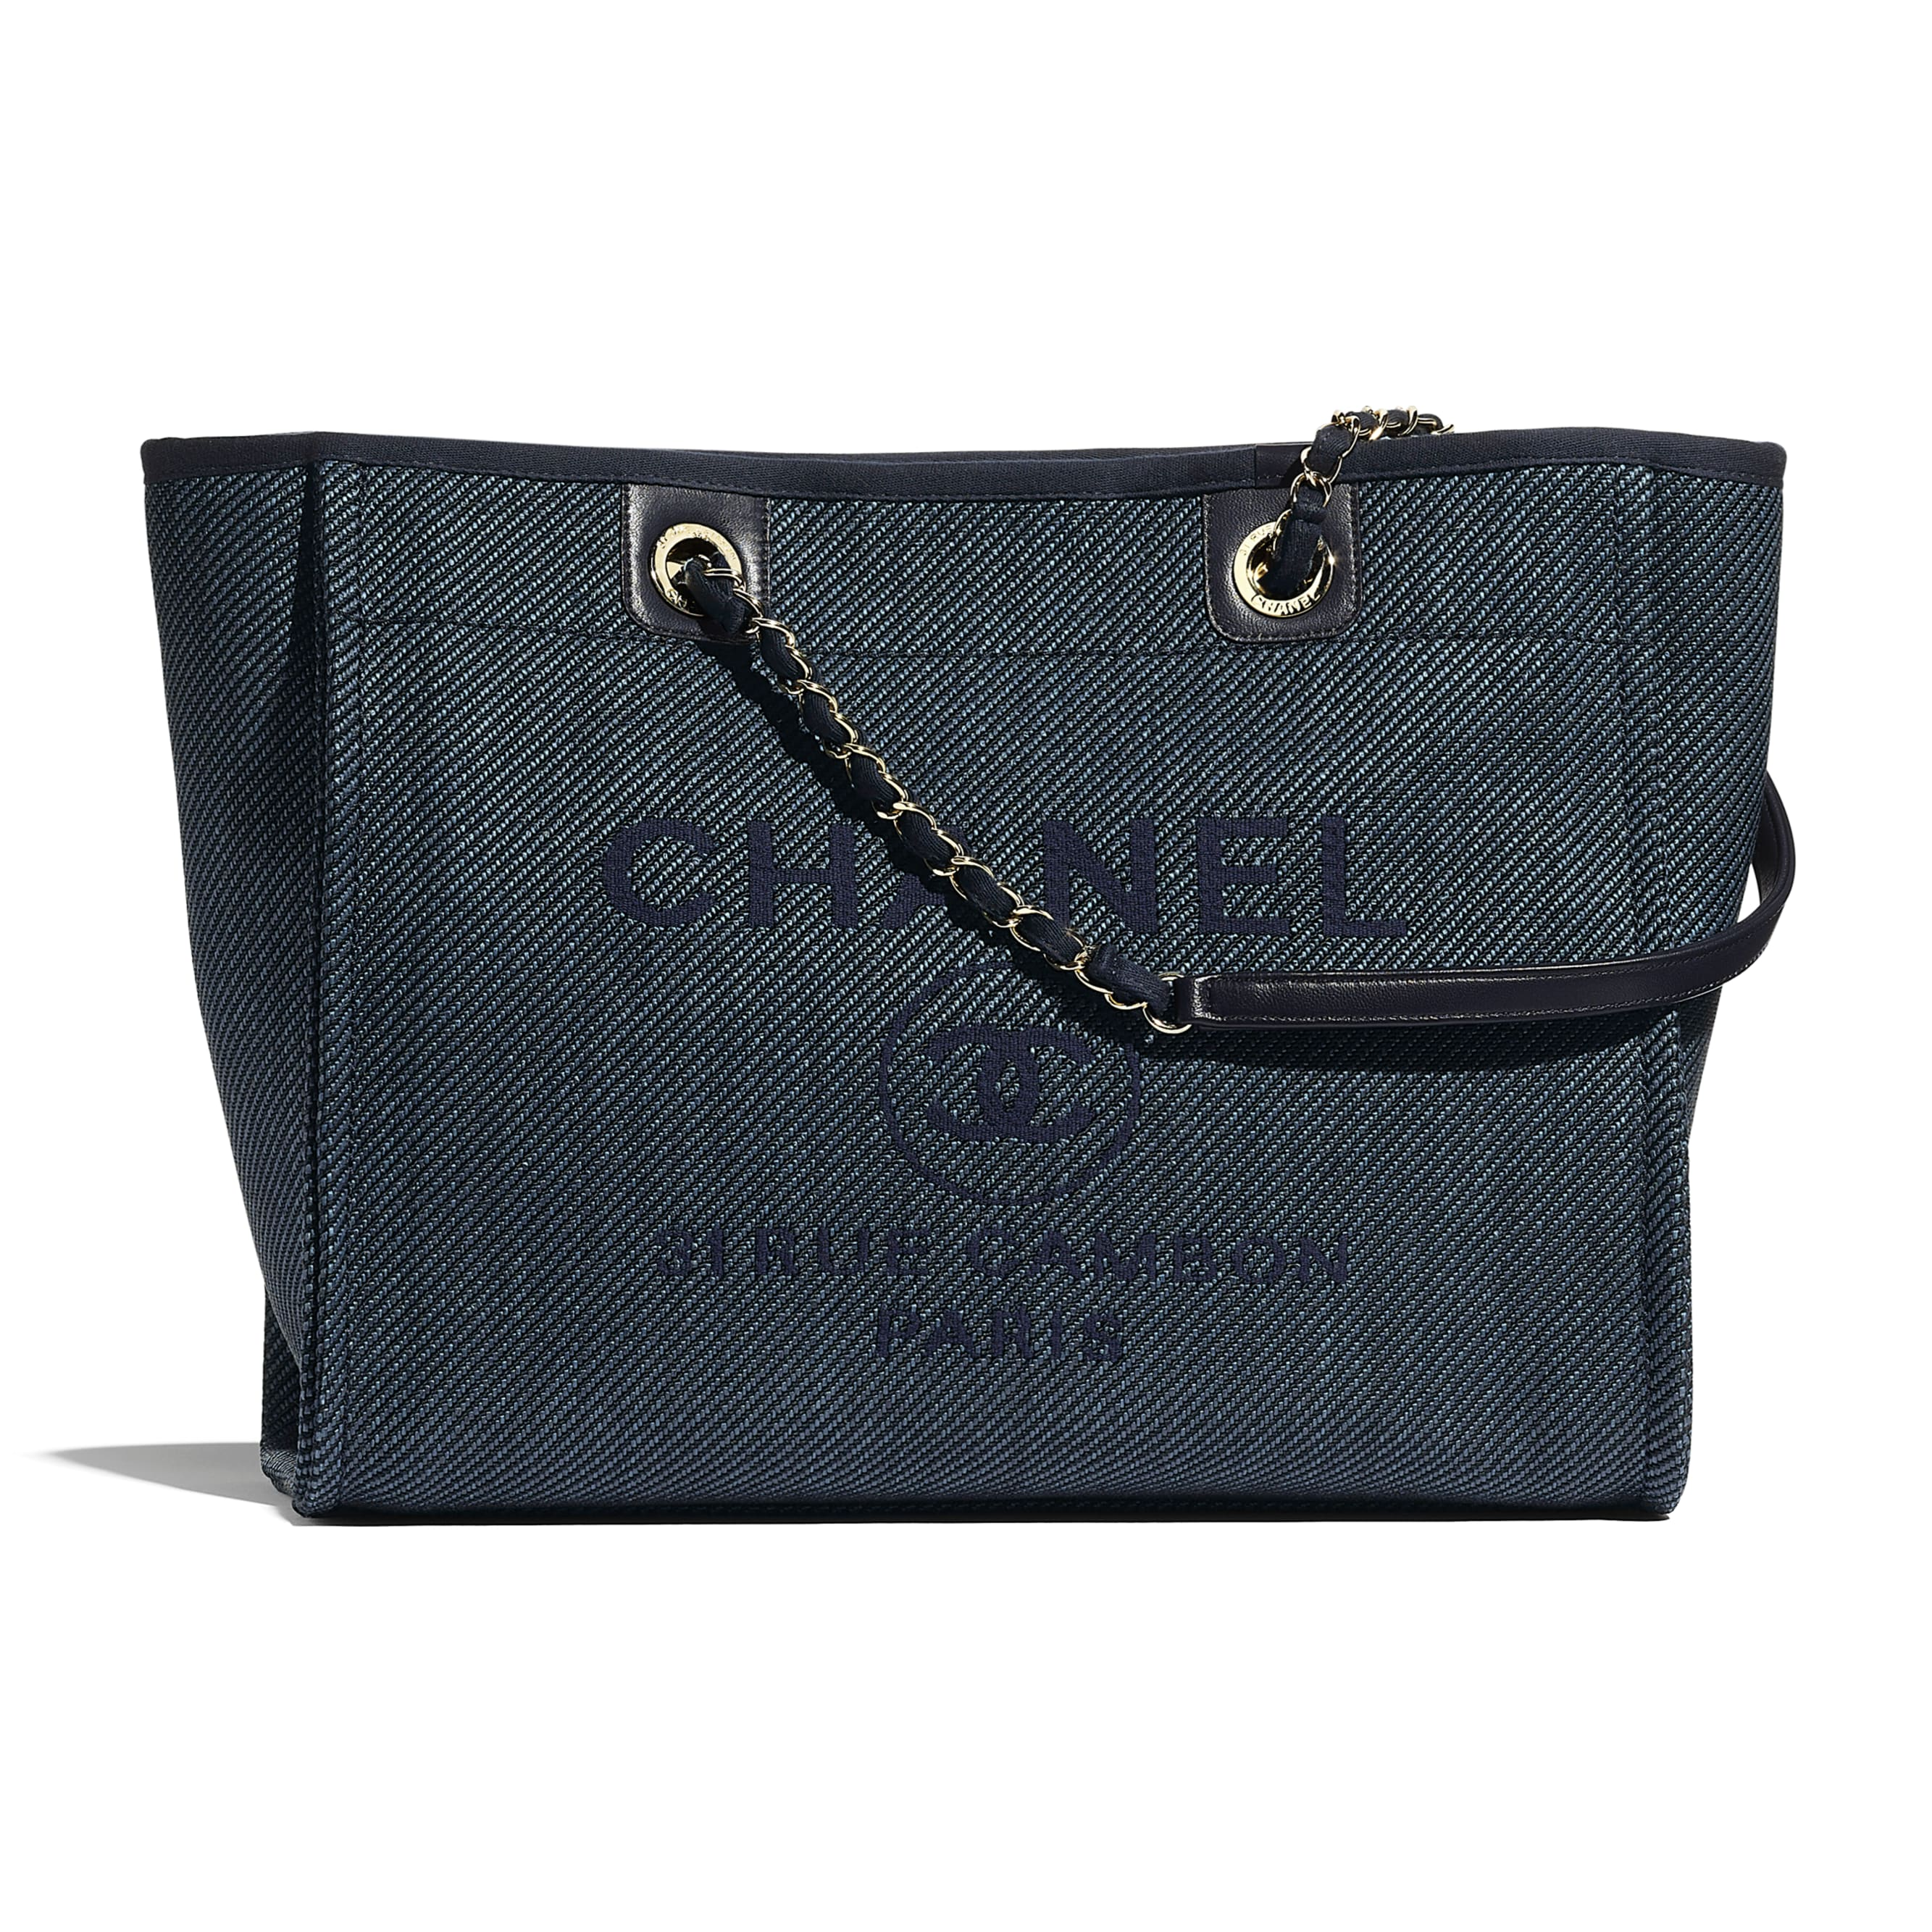 Shopping Bag - Navy Blue - Mixed Fibres, Calfskin & Gold-Tone Metal - CHANEL - Default view - see standard sized version